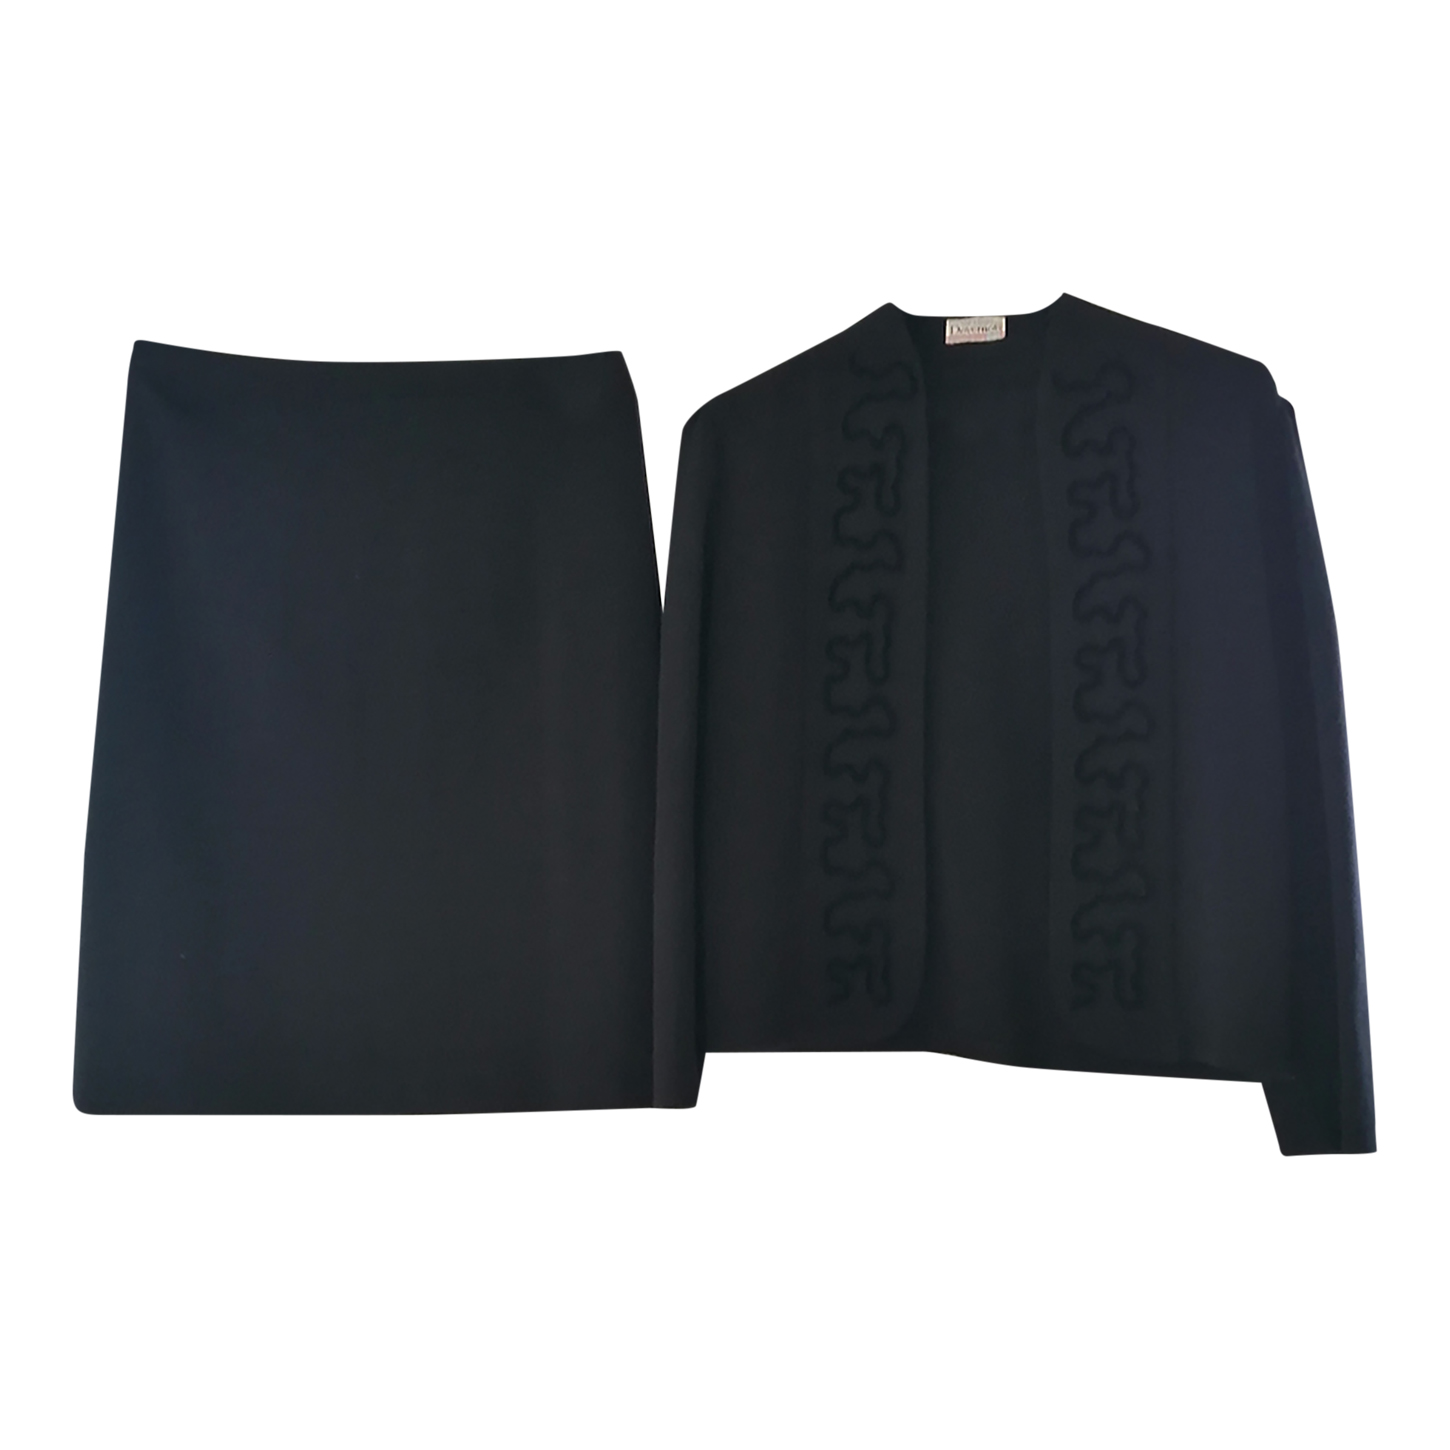 Tailleur jupe 90s